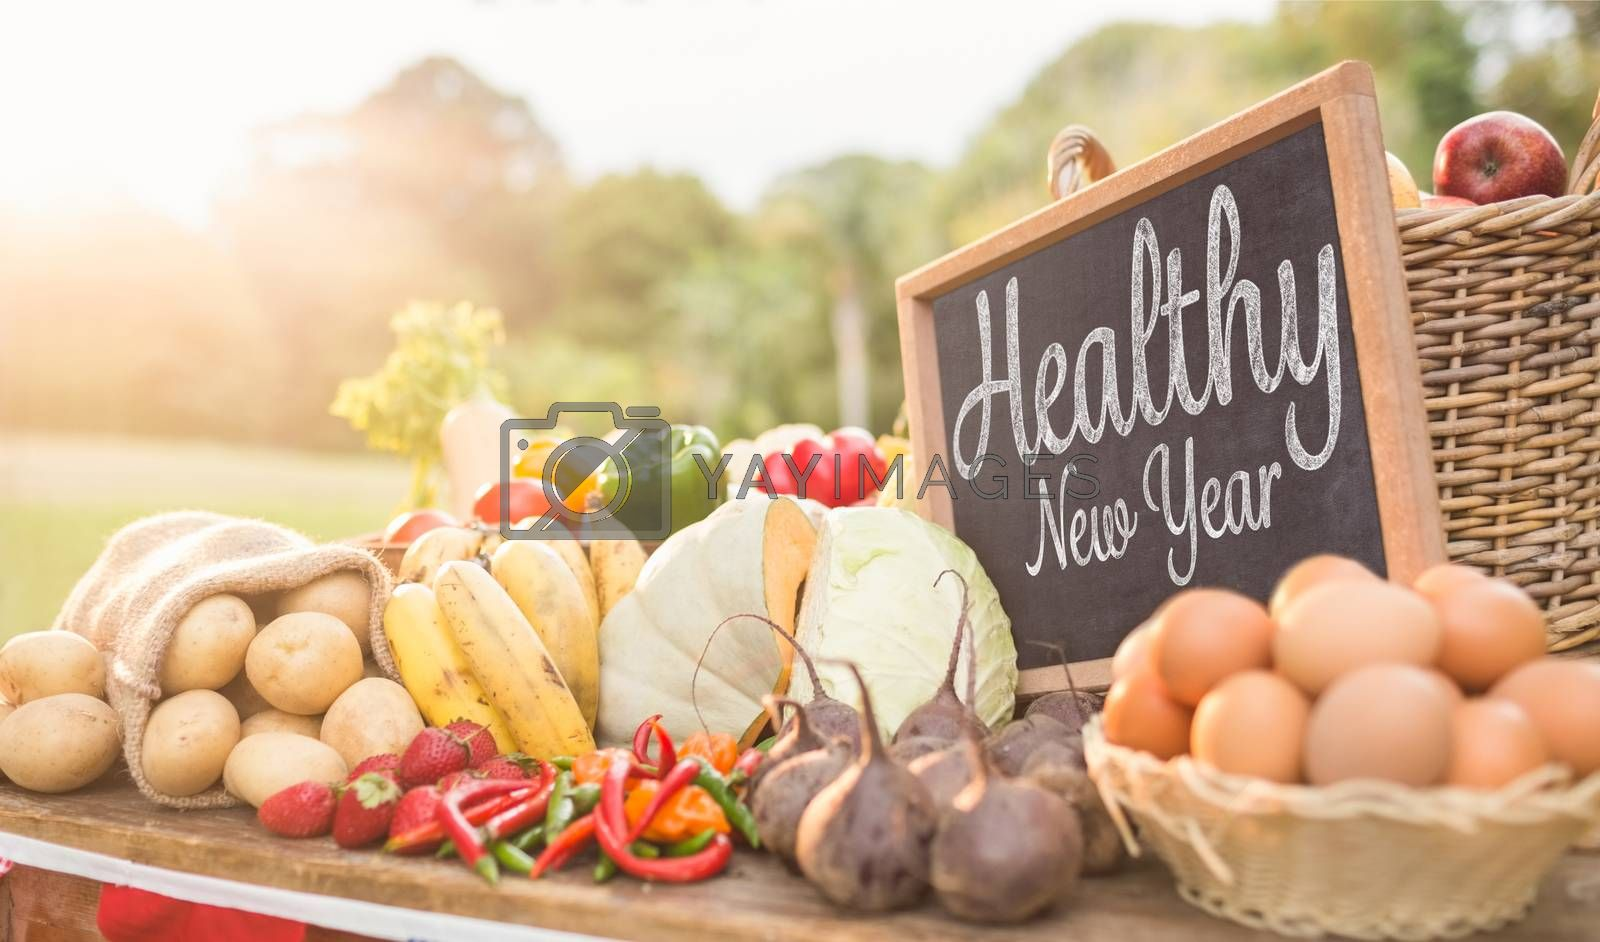 Healthy New Year against vegetables at farmers market